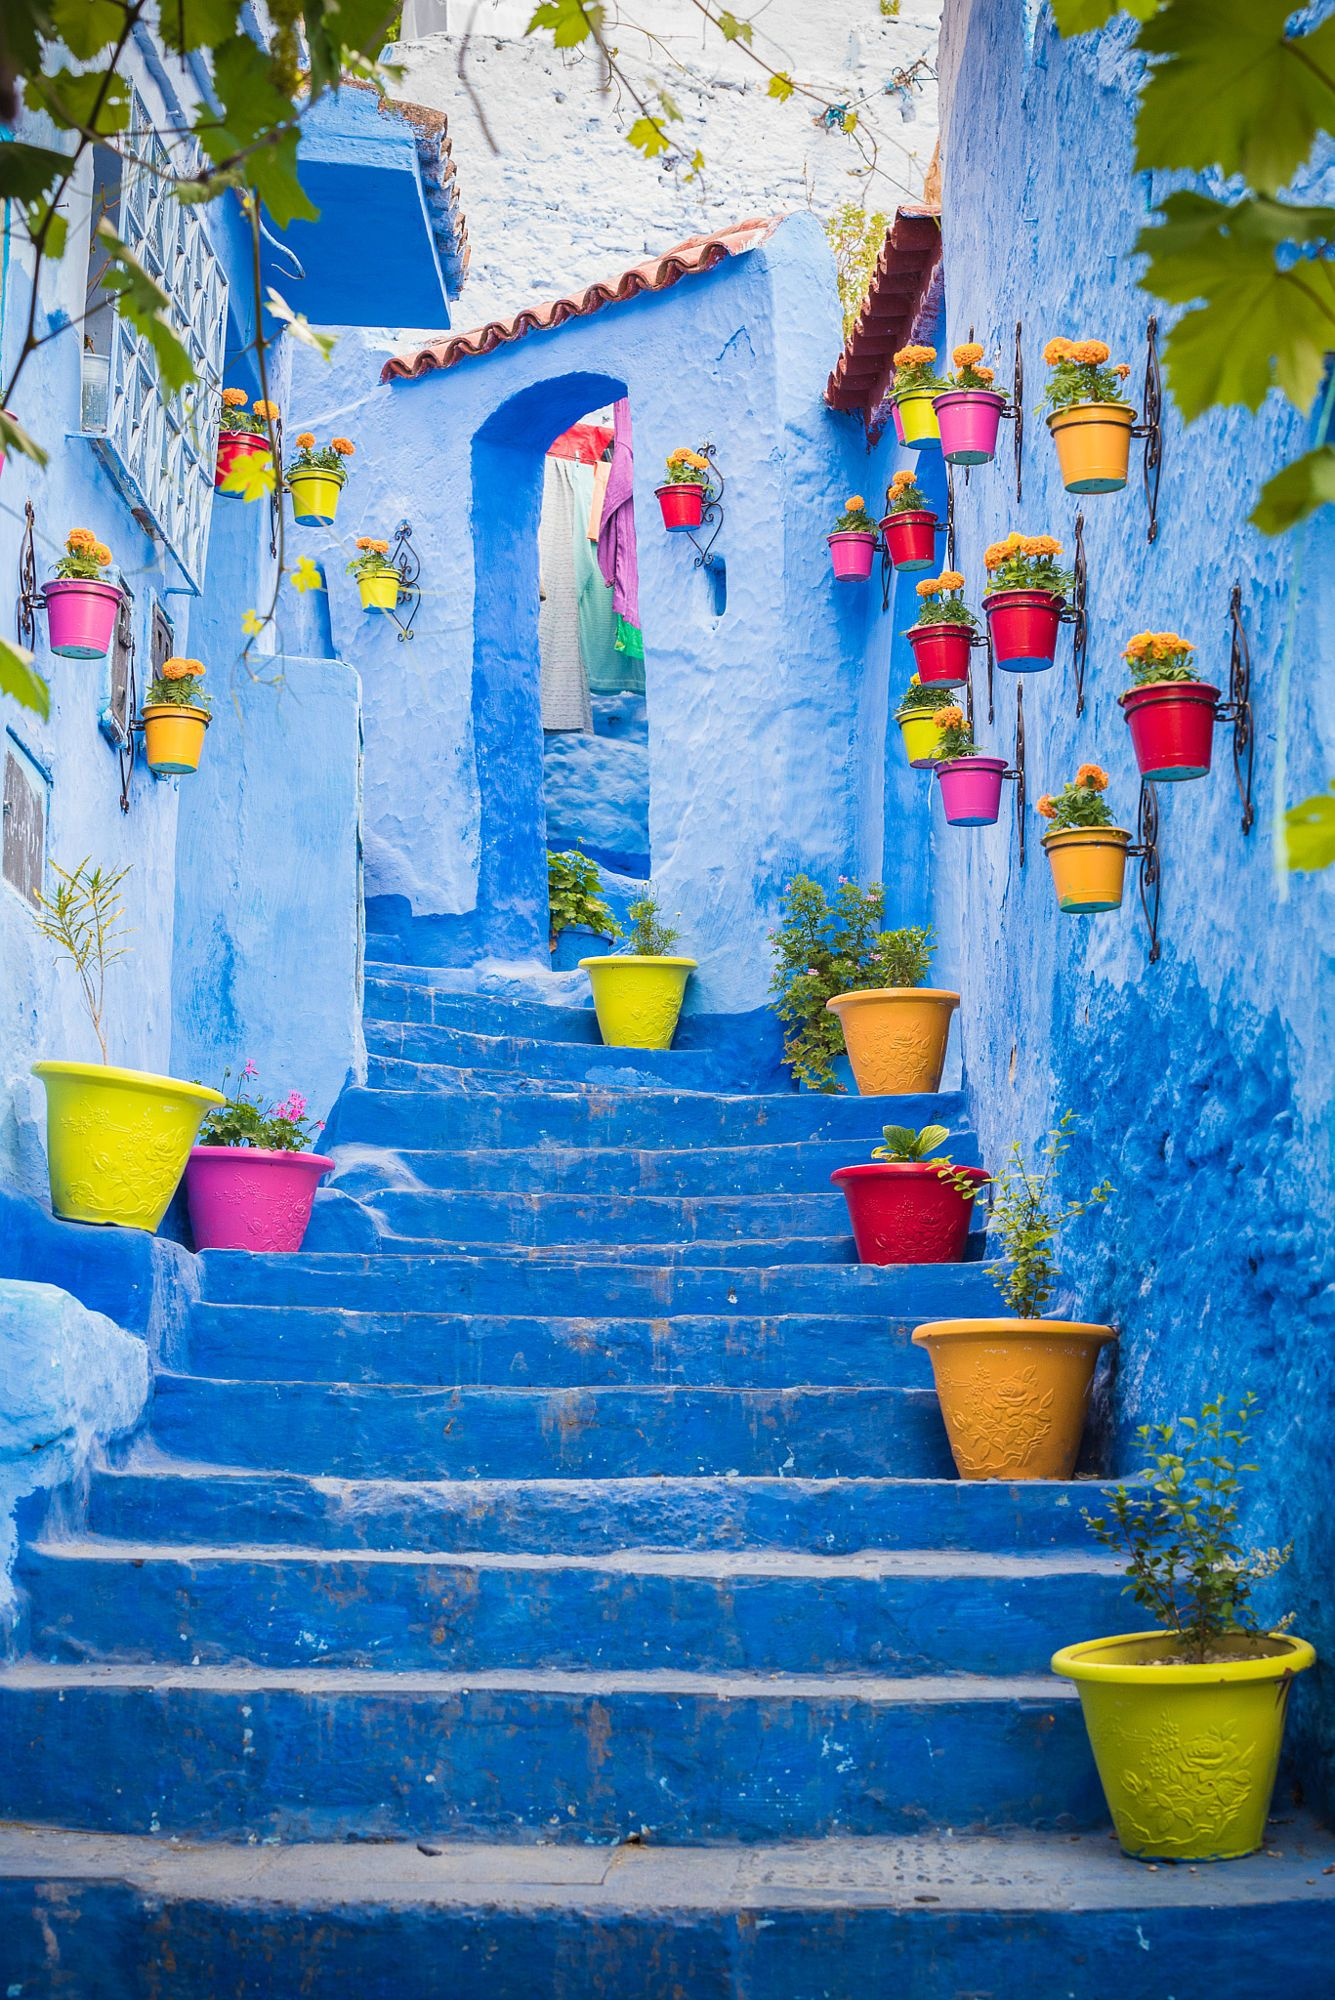 This won the award of the cutest street in Chefchaouen